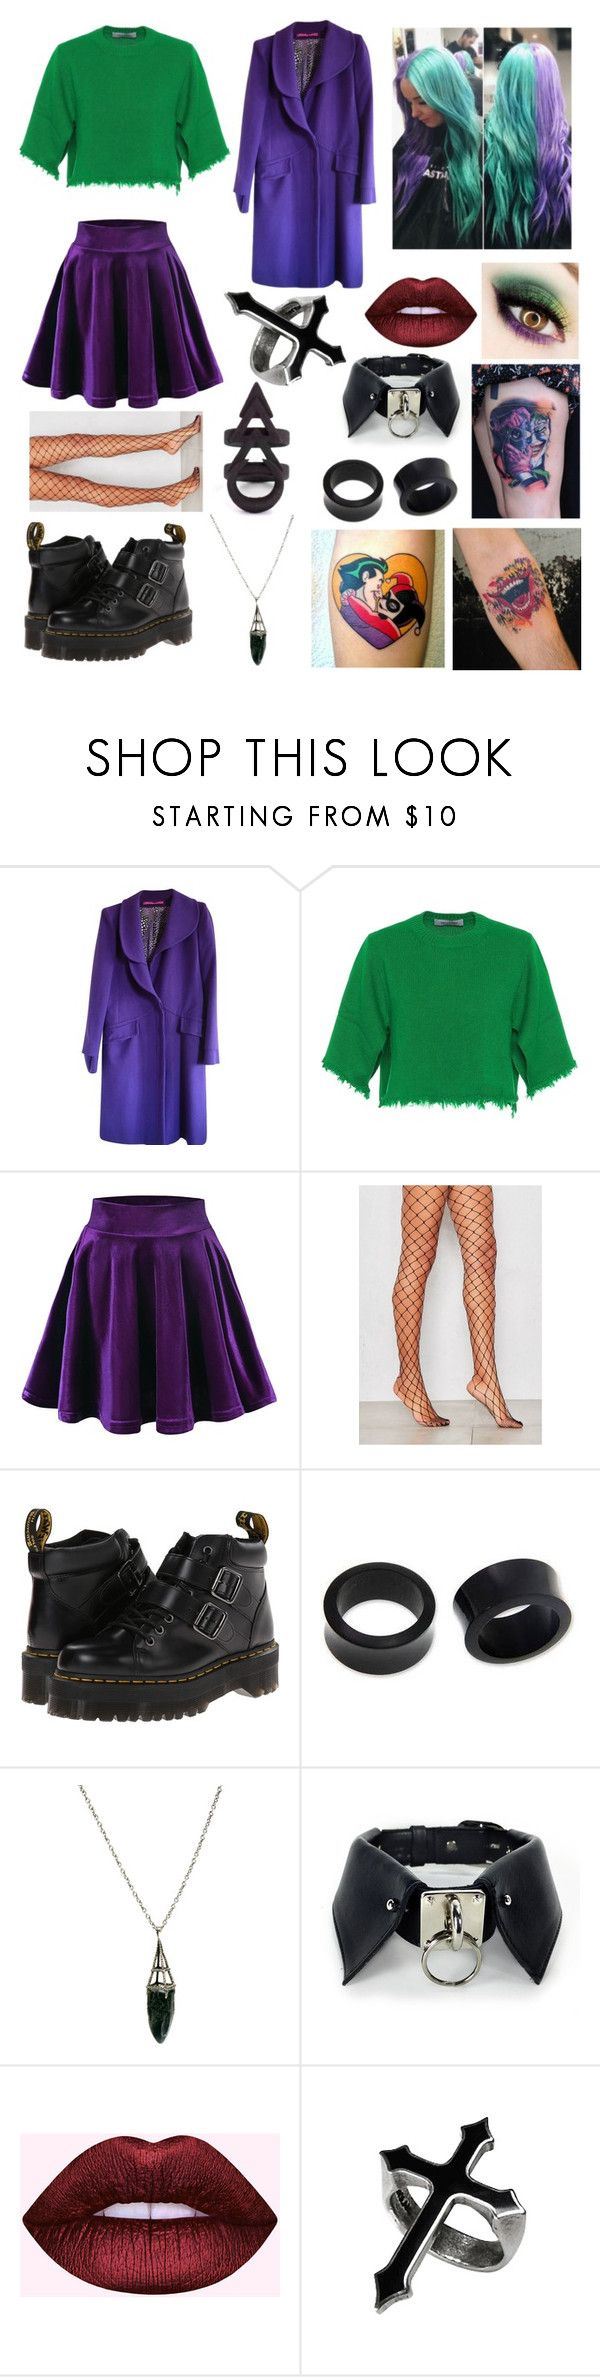 """""""The Joker"""" by spookyjane ❤ liked on Polyvore featuring Emanuel Ungaro, Valentino, Dr. Martens, NOVICA, Evil Twin and Rune NYC"""